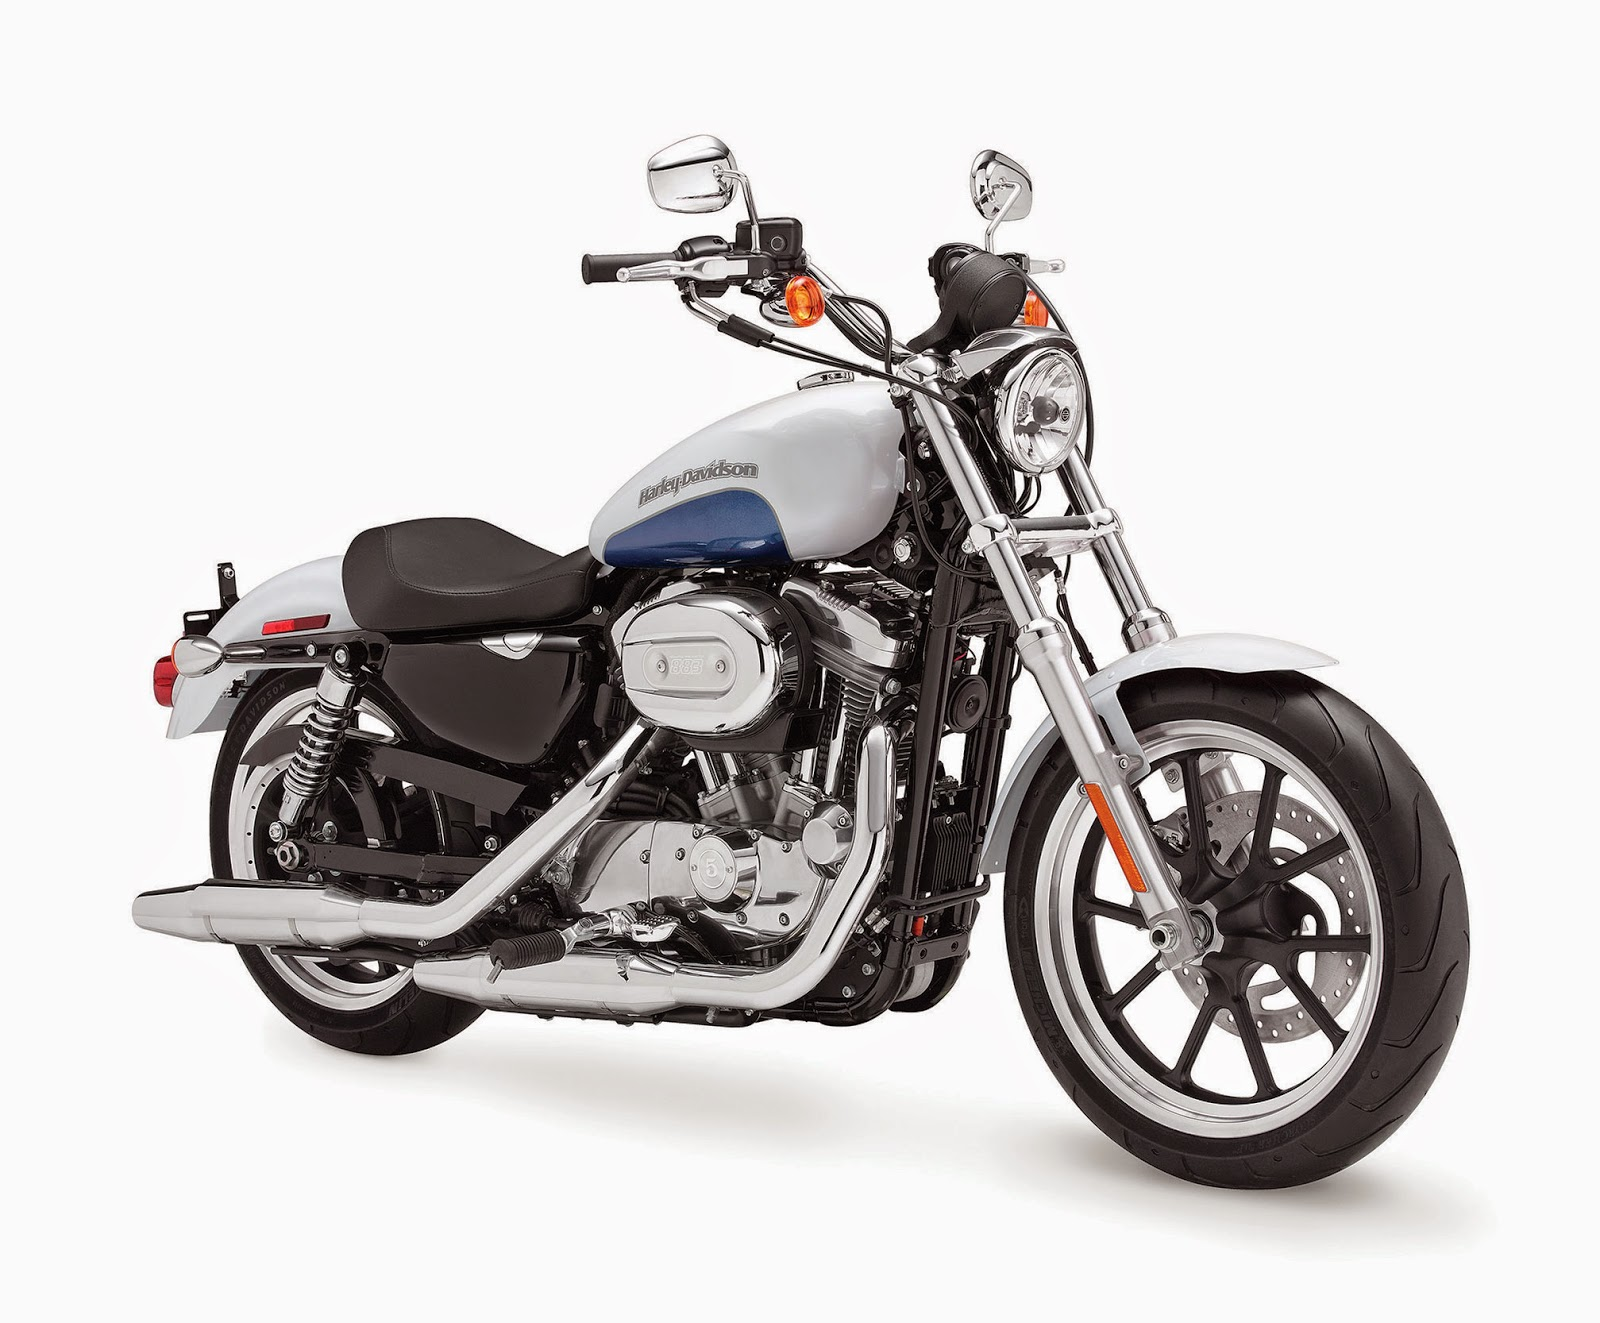 Bike Price In India 2015 Harley Davidson SuperLow Bike